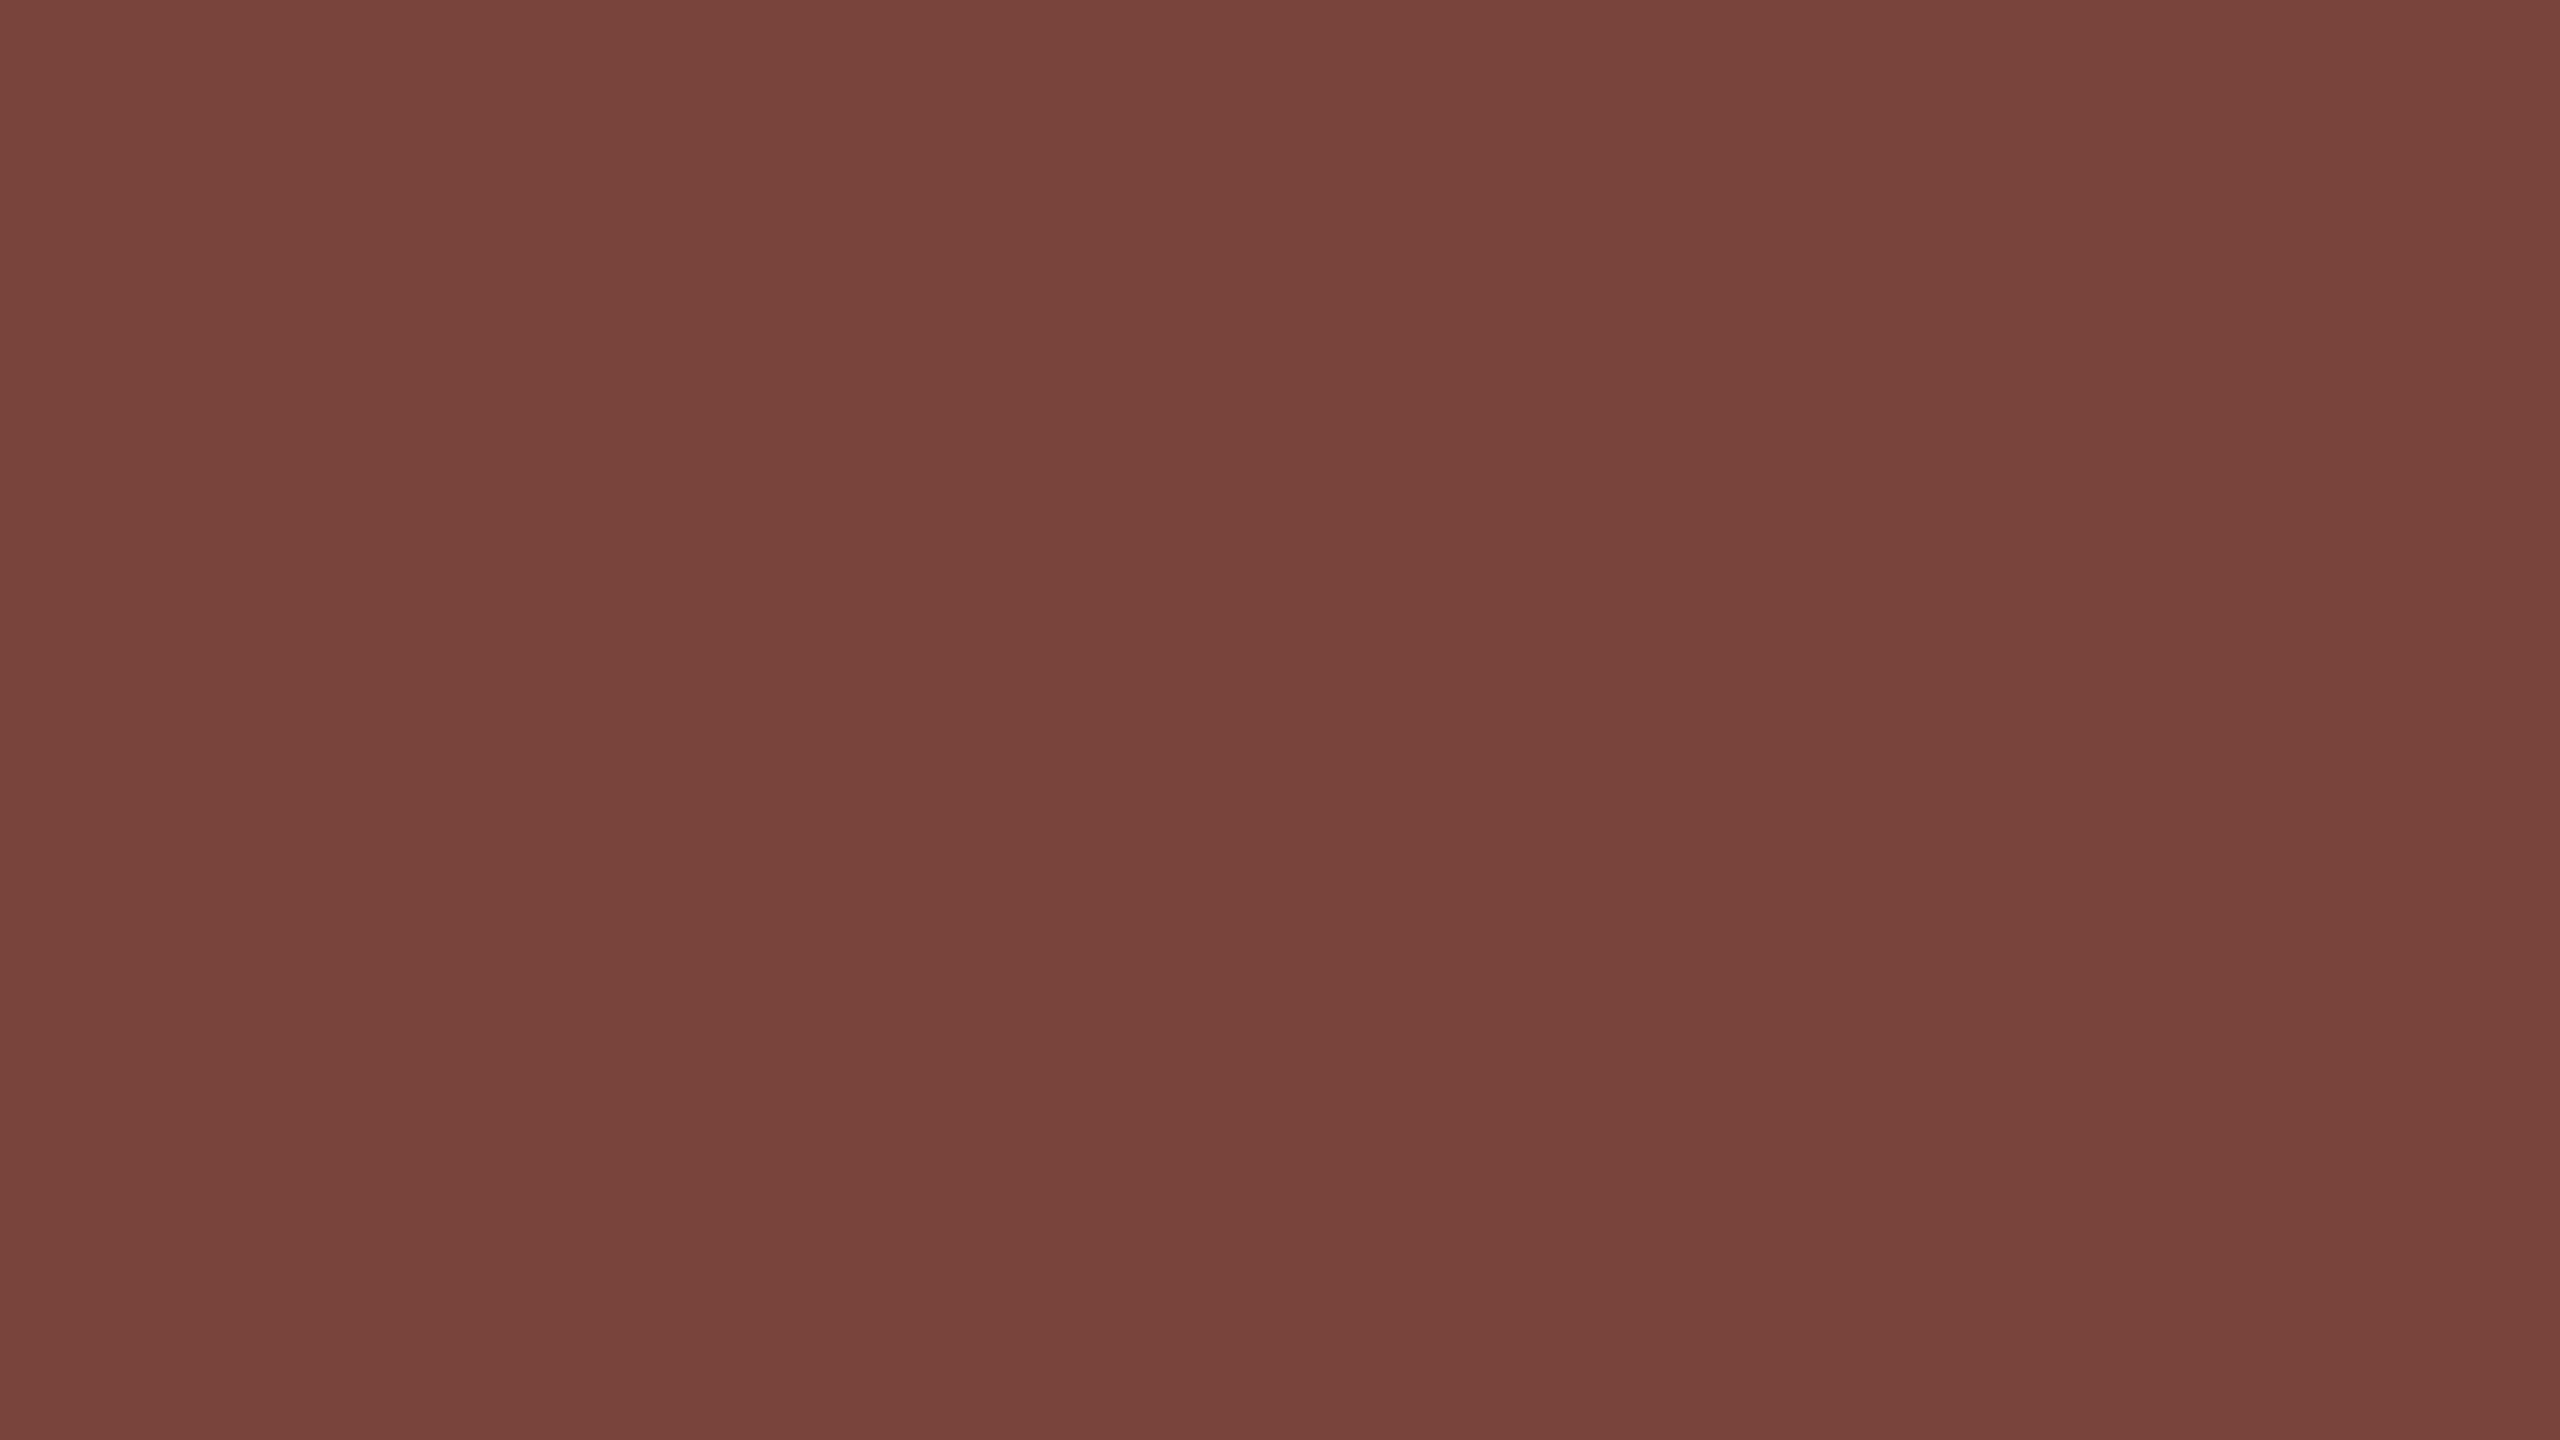 2560x1440 Bole Solid Color Background